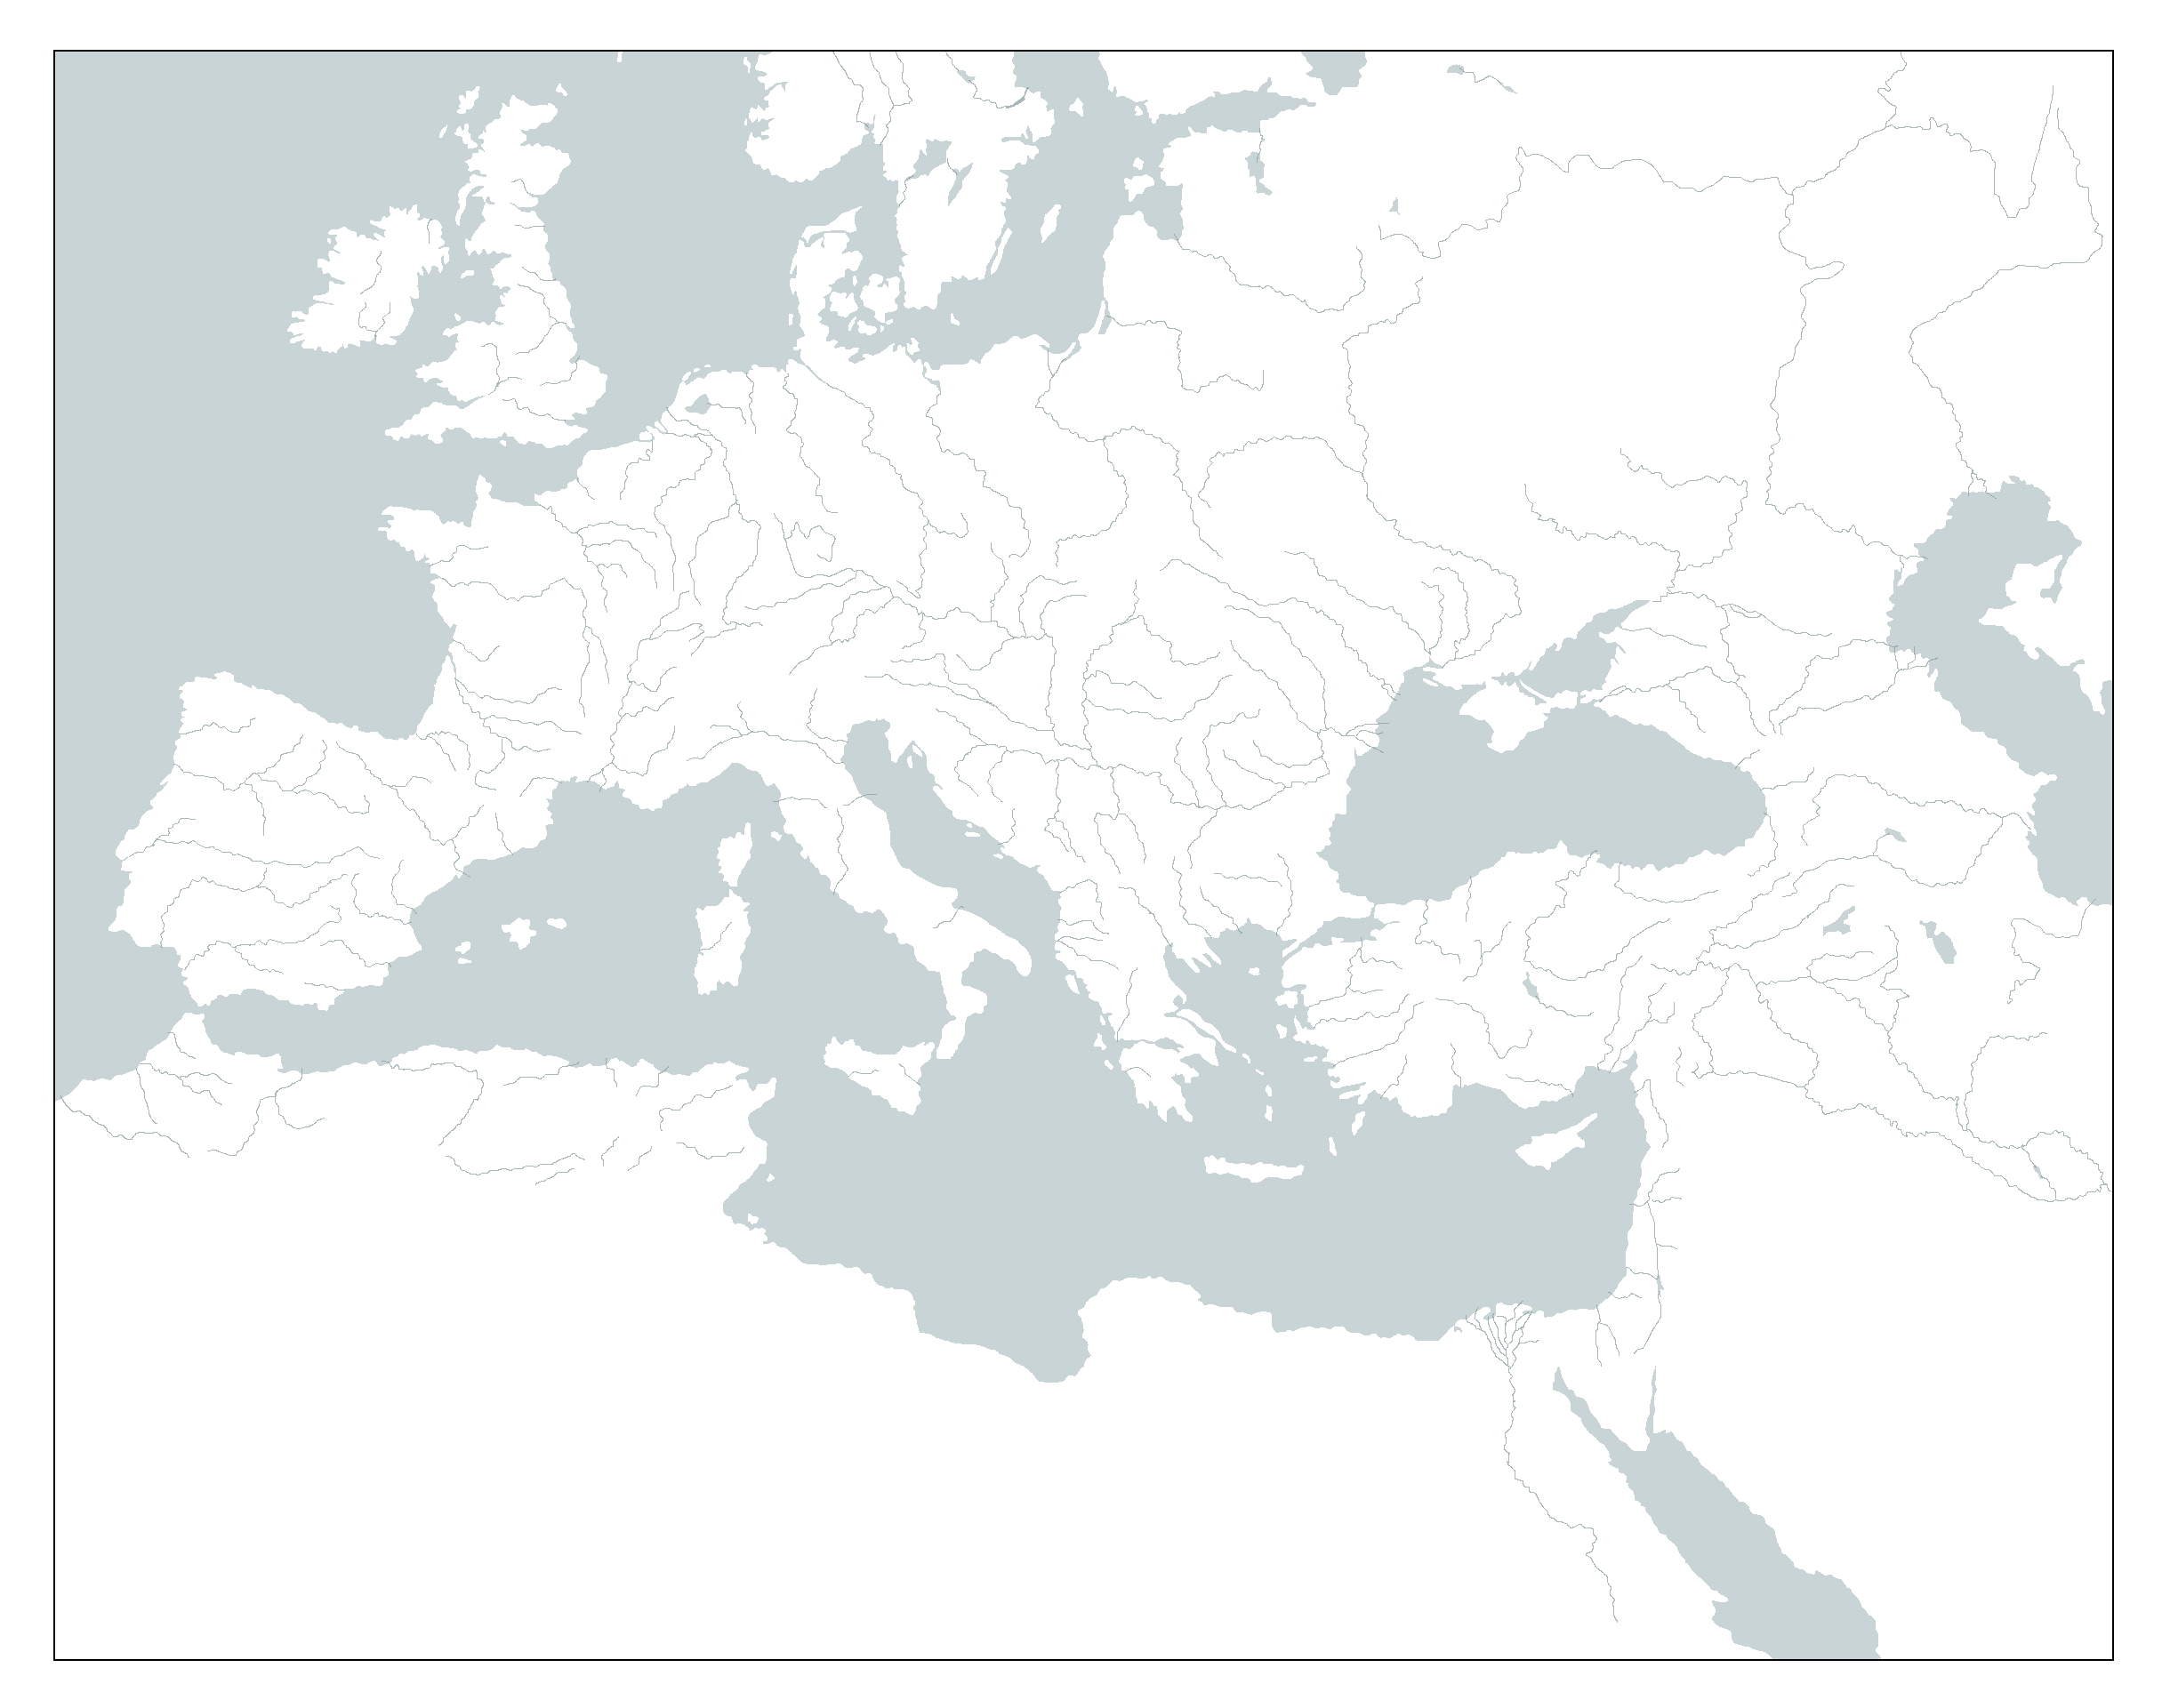 Blank Map of Europe and North Africa (rivers) by Kuusinen on